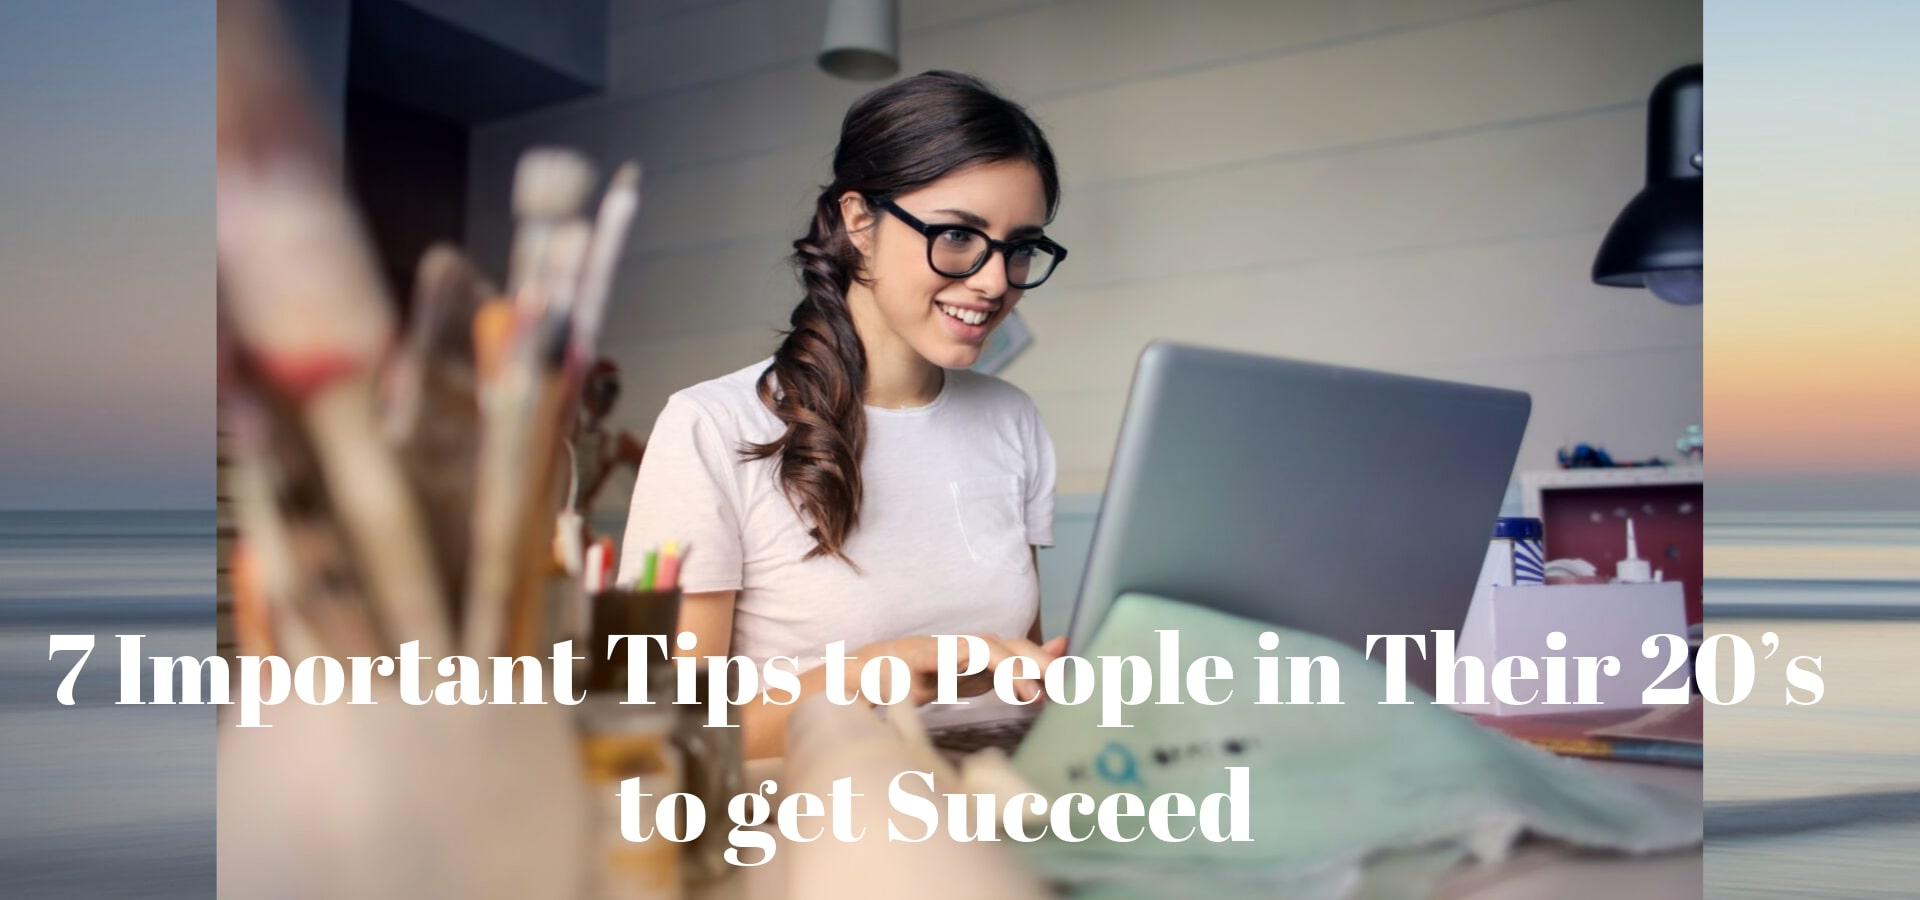 7-Important-Tips-to-People-in-Their-20's-to-get-Succeed